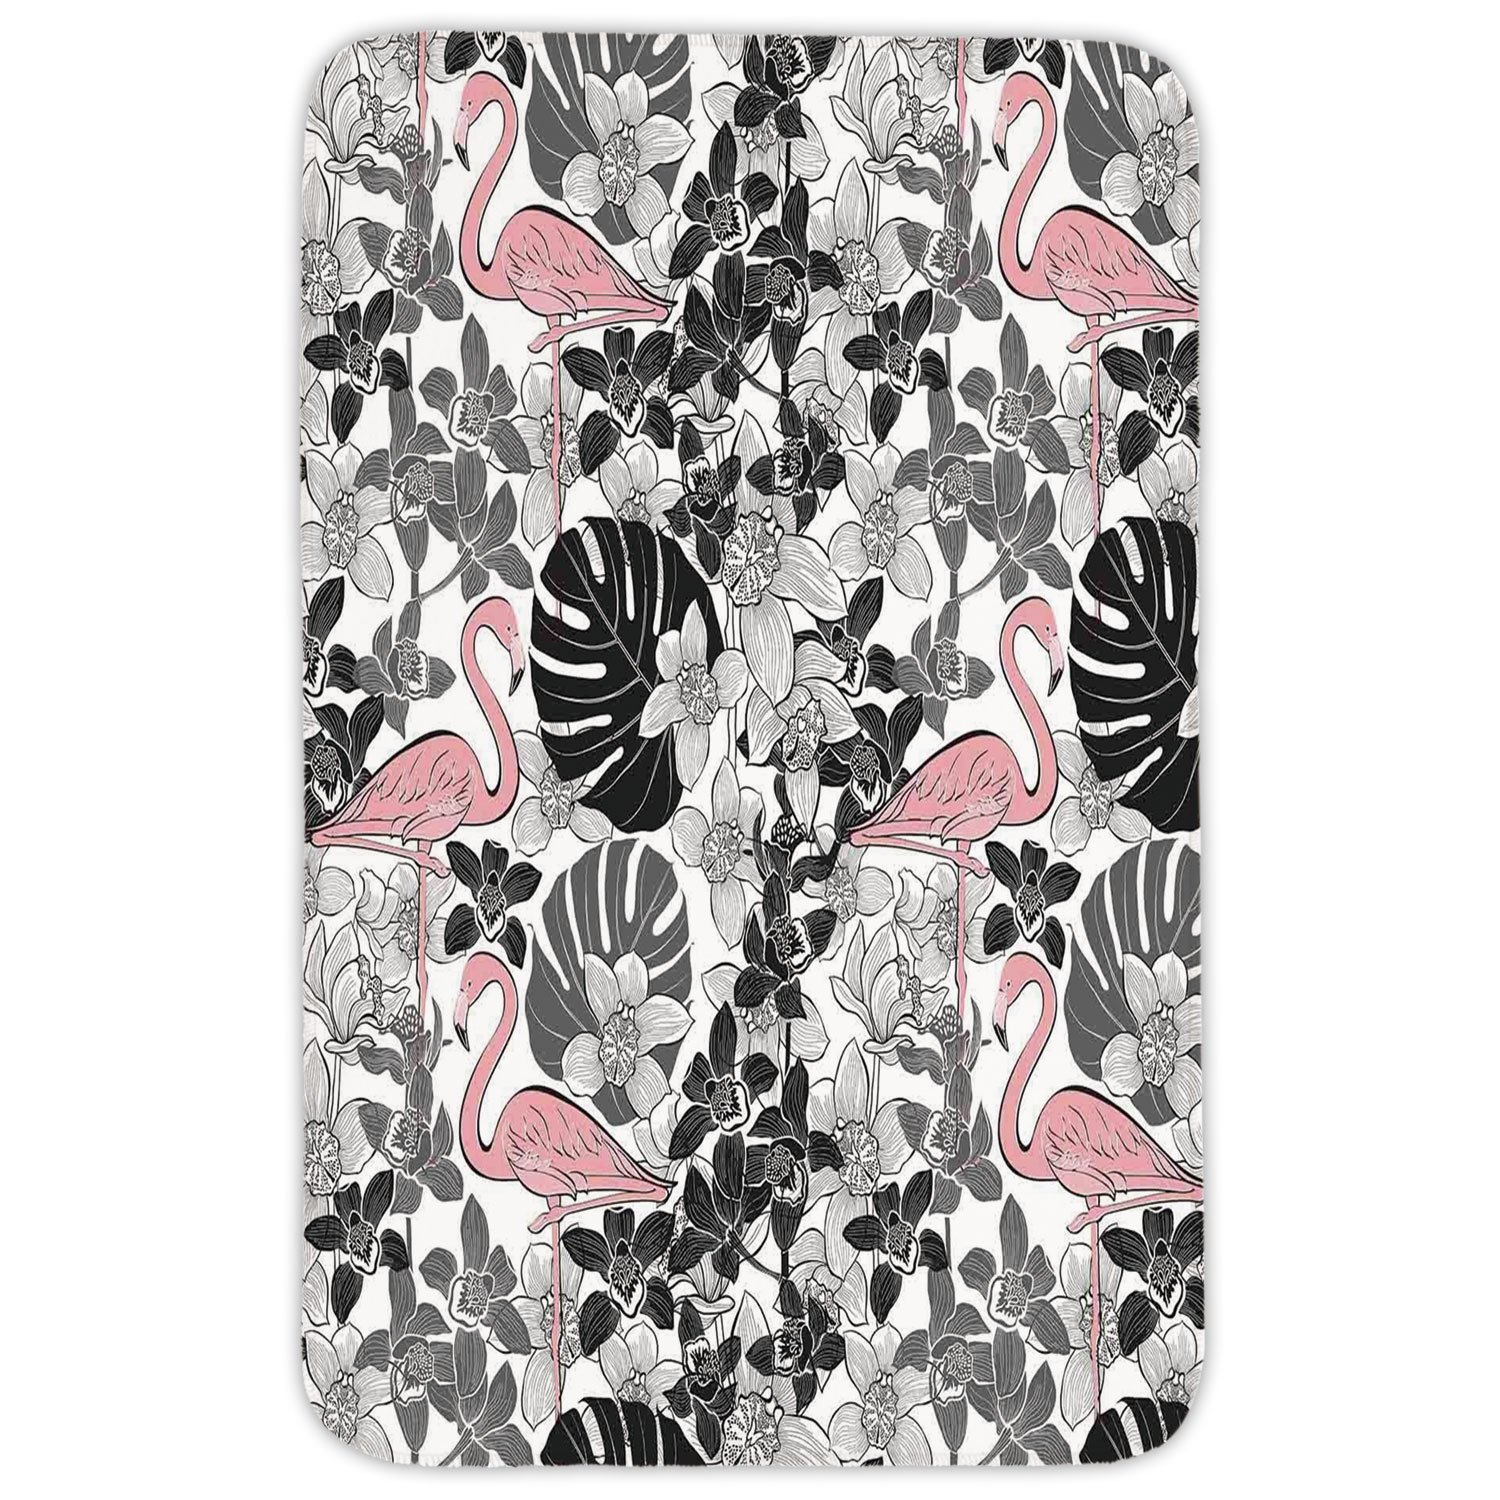 Rectangular Area Rug Mat Rug,Flamingo,Flamingos Pattern Leaves and Flowers Tropical Plants on Background,Black Grey Light Pink,Home Decor Mat with Non Slip Backing